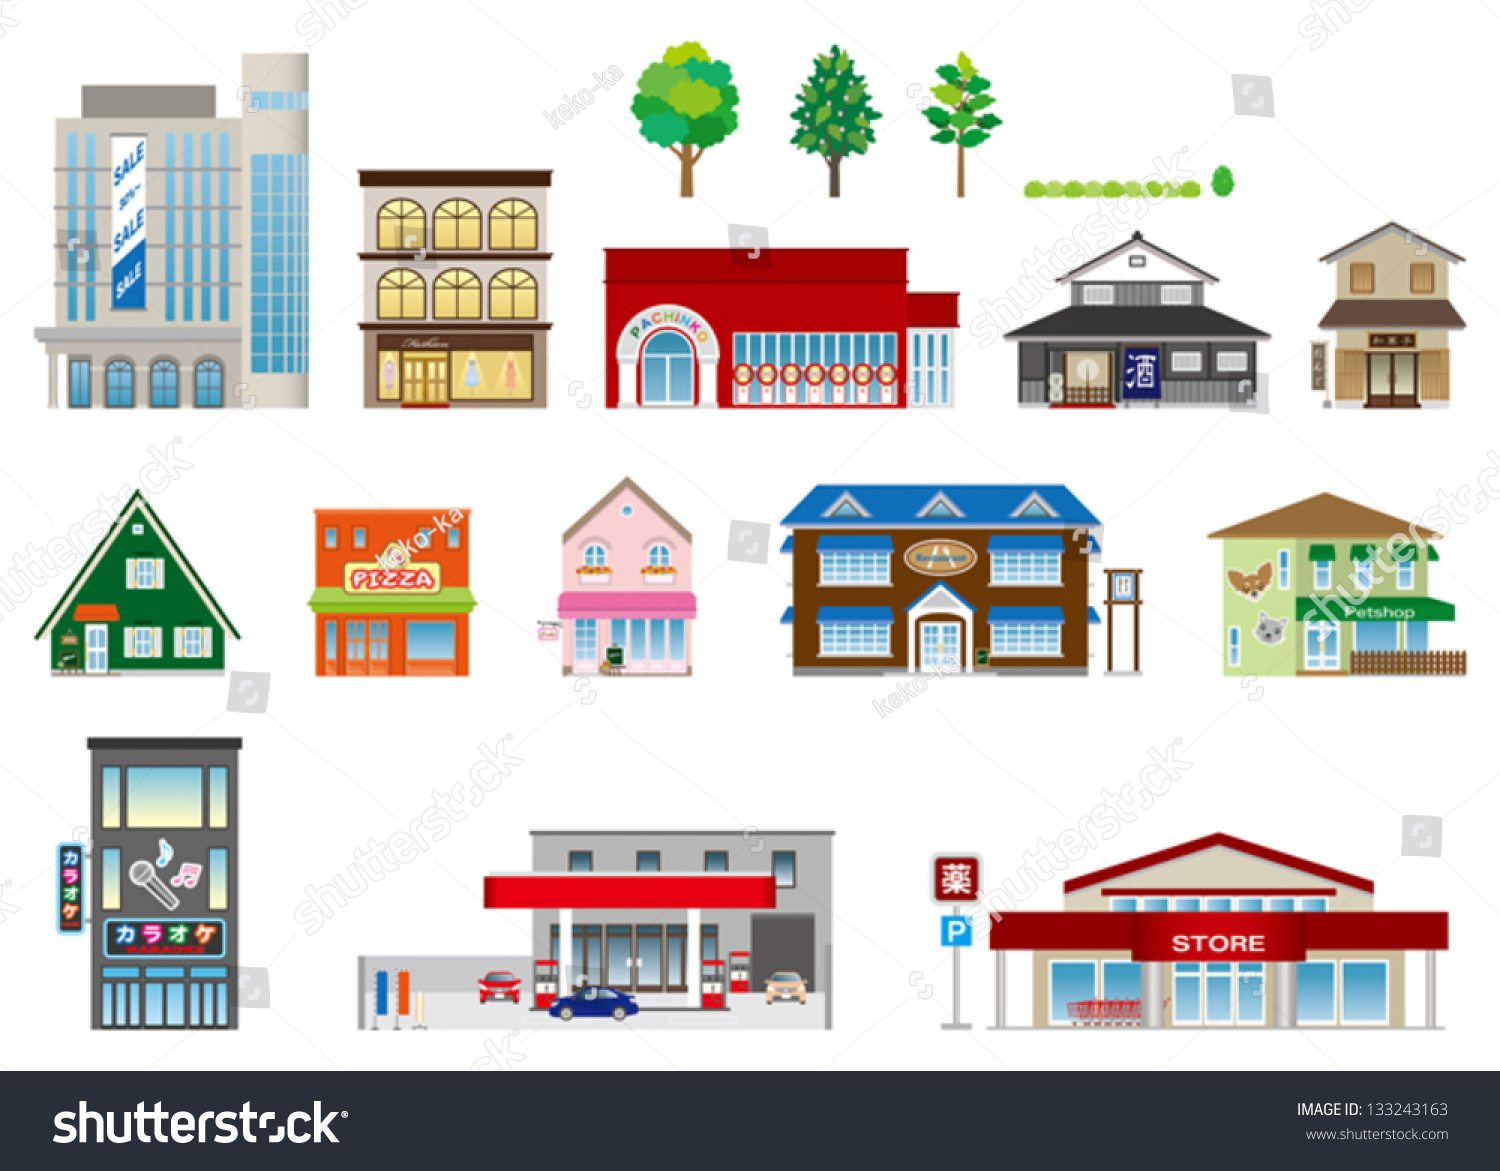 Building Shop Business Stock Vector